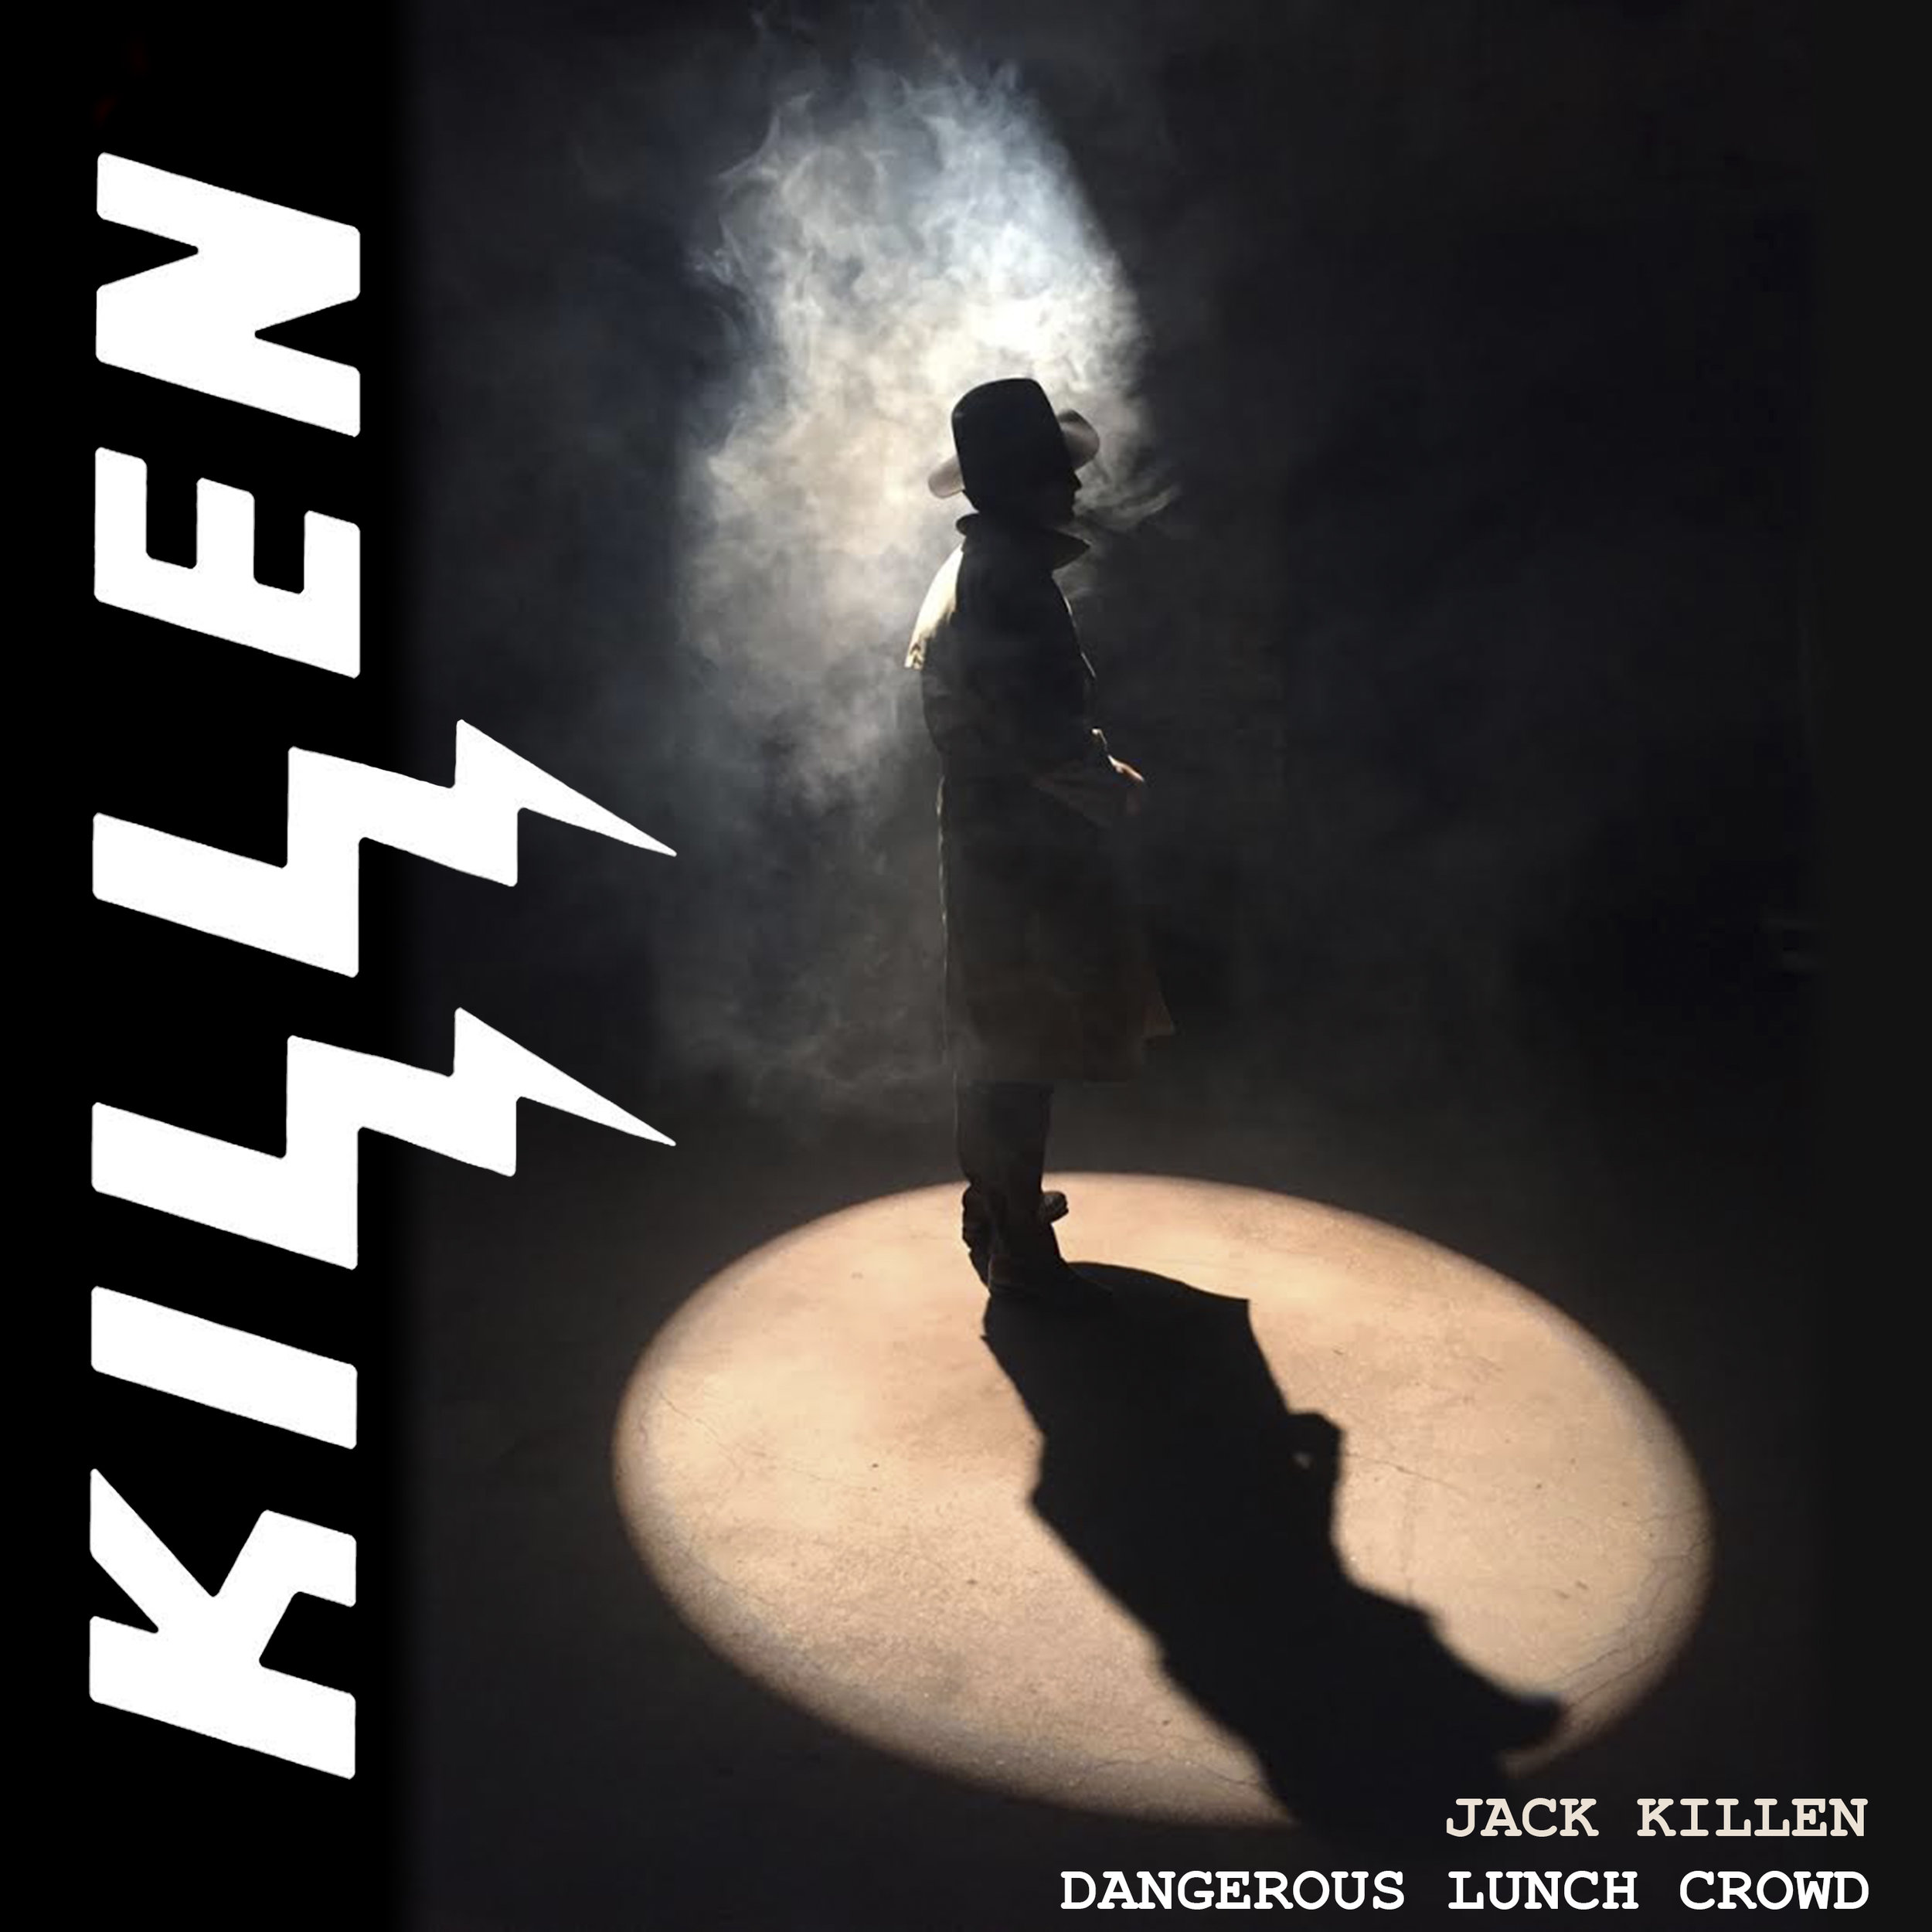 JACK KILLEN DANGEROUS LUNCH CROWD   - DEBUT EP OUT NOW                                            https://lnk.to/JackKillen_DLC